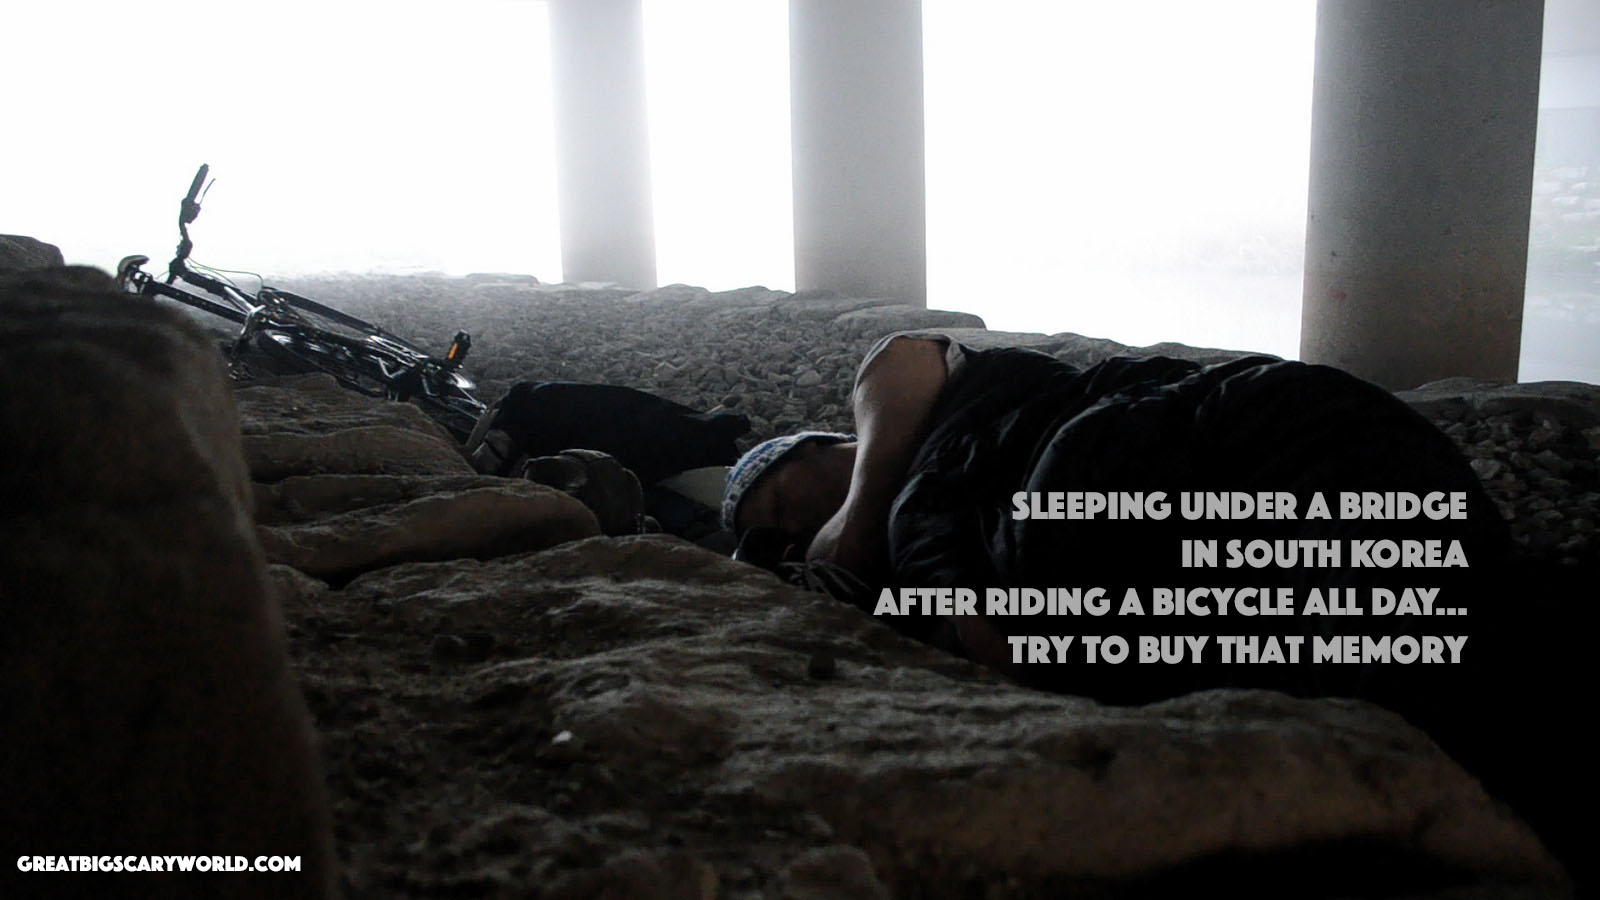 Sleeping under a bridge in South Korea after riding a bicycle all day try to buy that memory